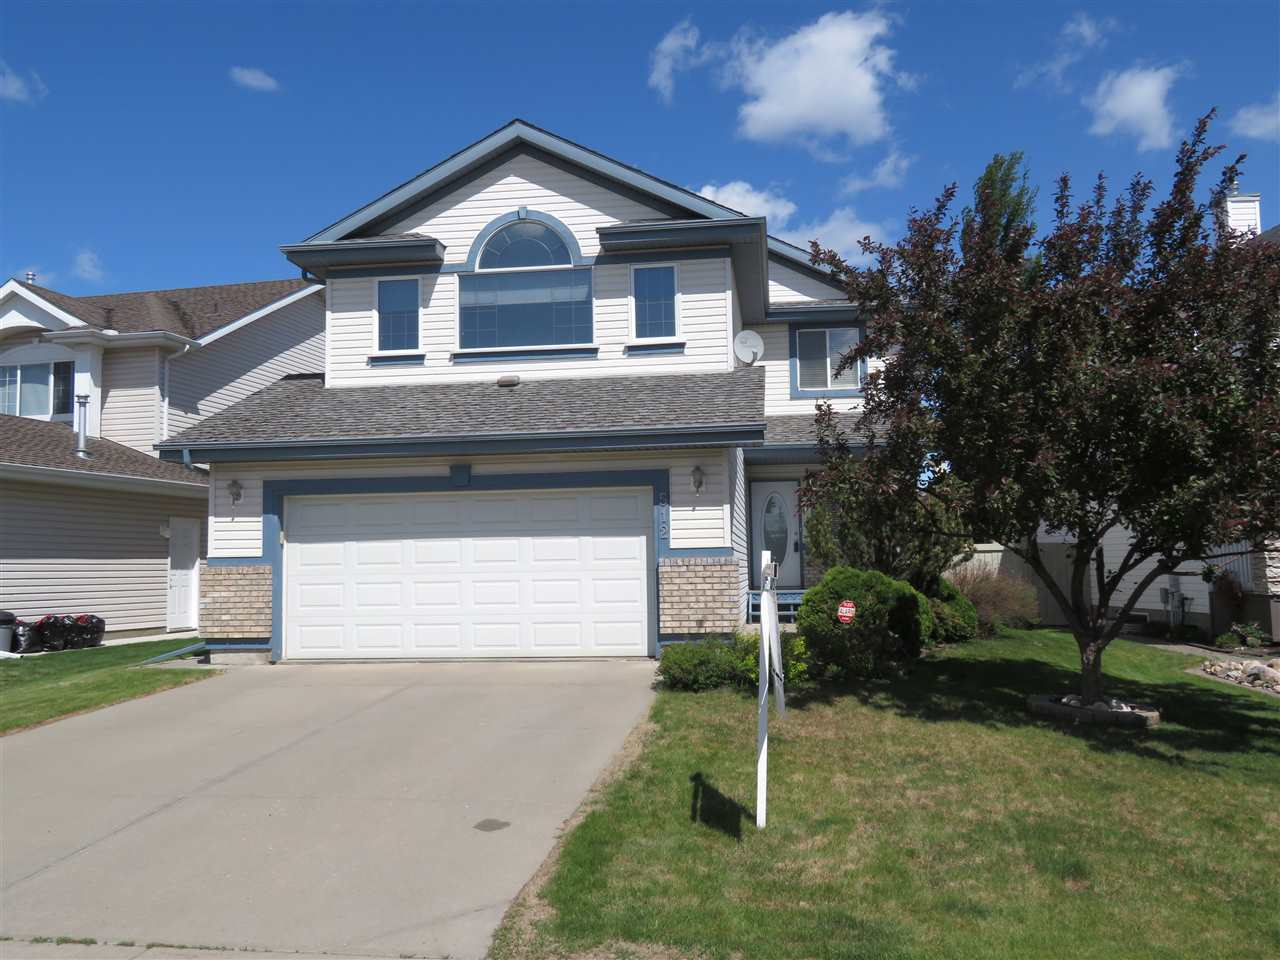 Main Photo: 512 LEGER Way NW in Edmonton: Zone 14 House for sale : MLS®# E4113804